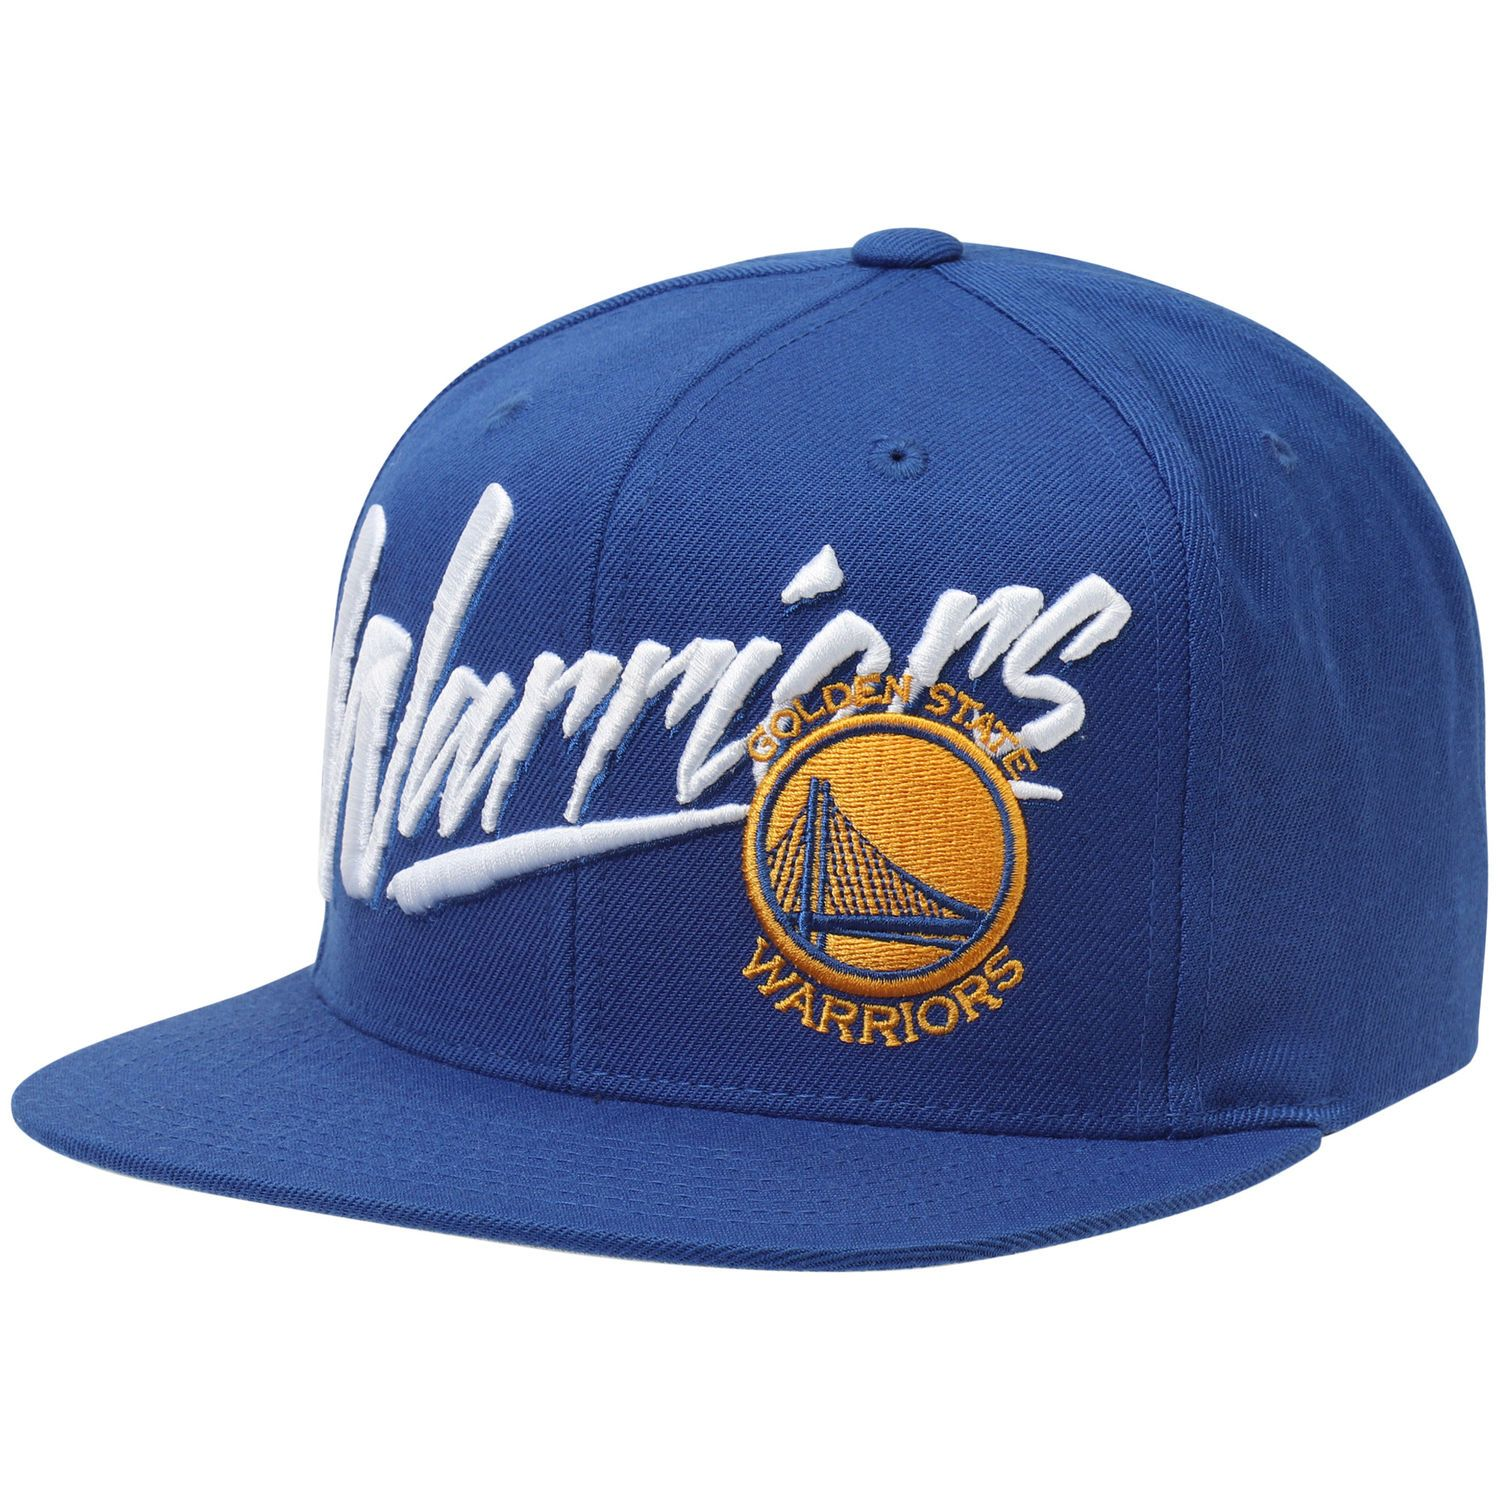 99156fa5 Men's Golden State Warriors Mitchell & Ness Royal Vice Script Solid Snapback  Hat